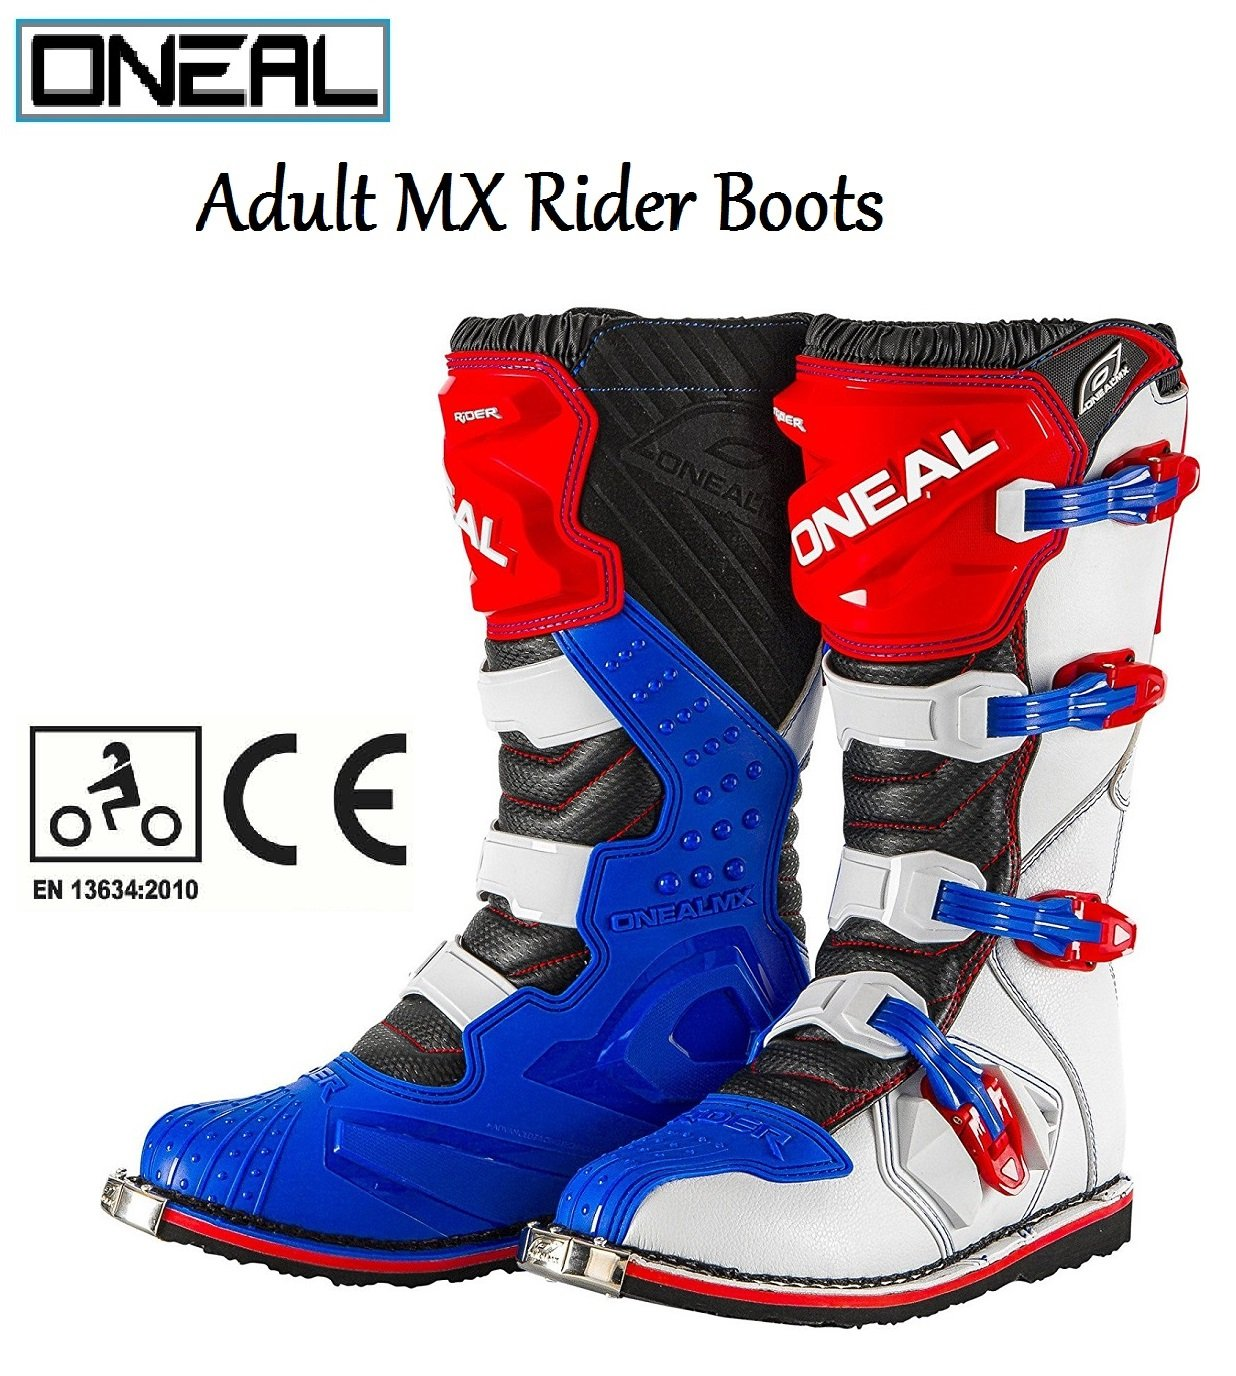 UNISEX MOTORBIKE CE BOOTS 2018 - ONEAL RIDER DIRT-BIKE MX OFF ROAD Quad ATV Motorcycle Motocross Track Trail Off Road Sports Shin Guard Proteciton Adult Race Boots (BLUE/RED/WHITE) ONEAL BOOTS